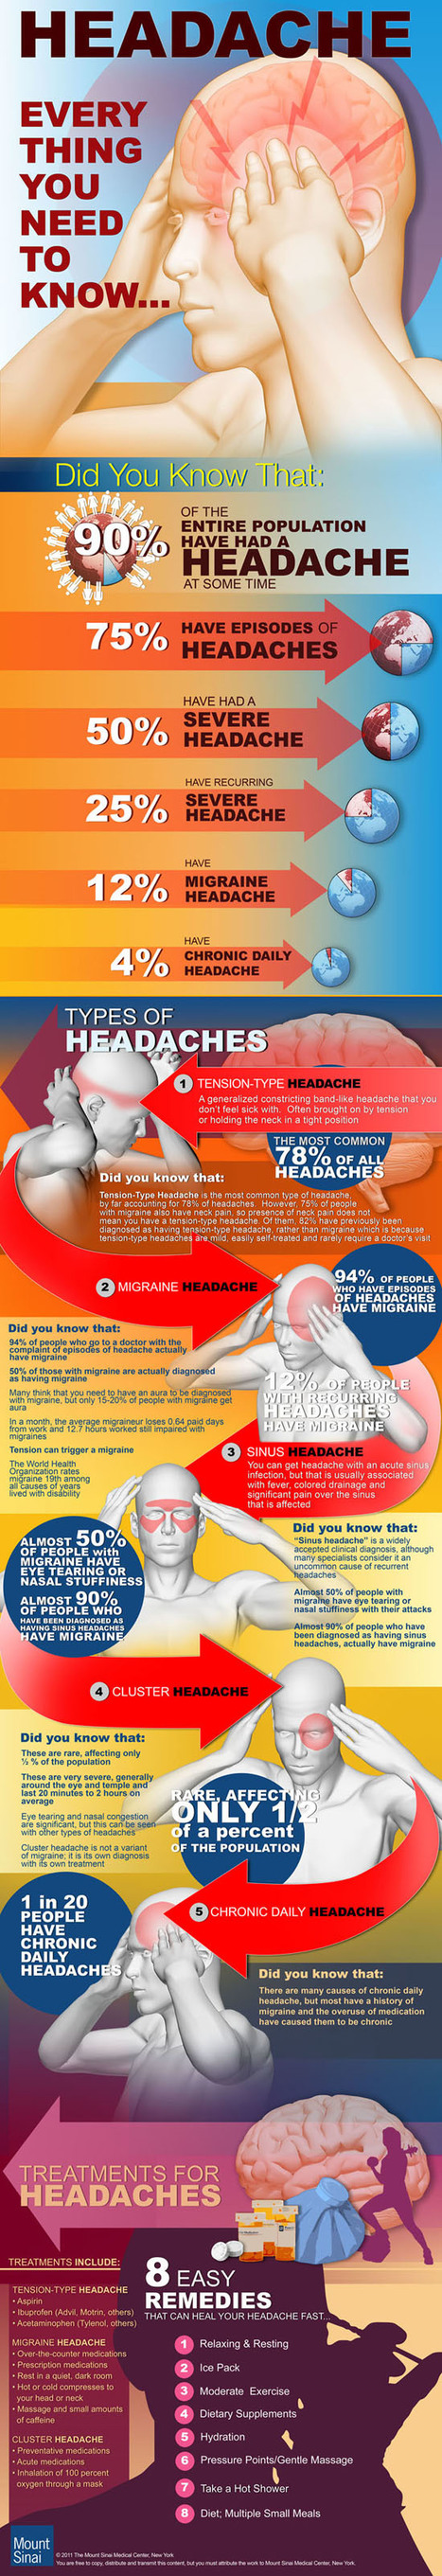 90% Of World Population Suffering From Headache [How to Prevent]   HealthSmart   Scoop.it